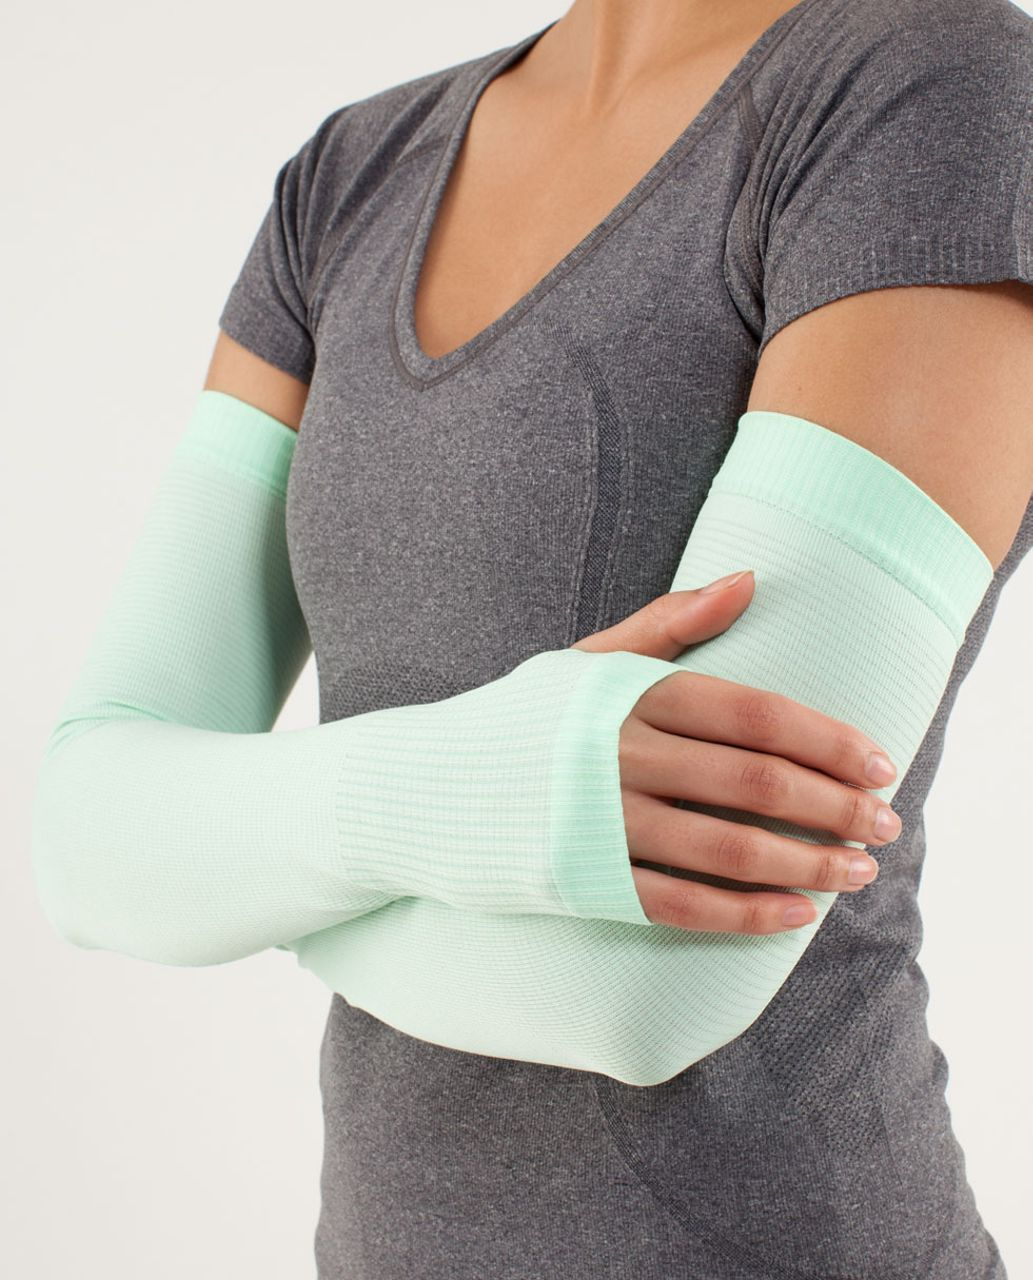 Lululemon Swiftly Arm Warmers - Fresh Teal